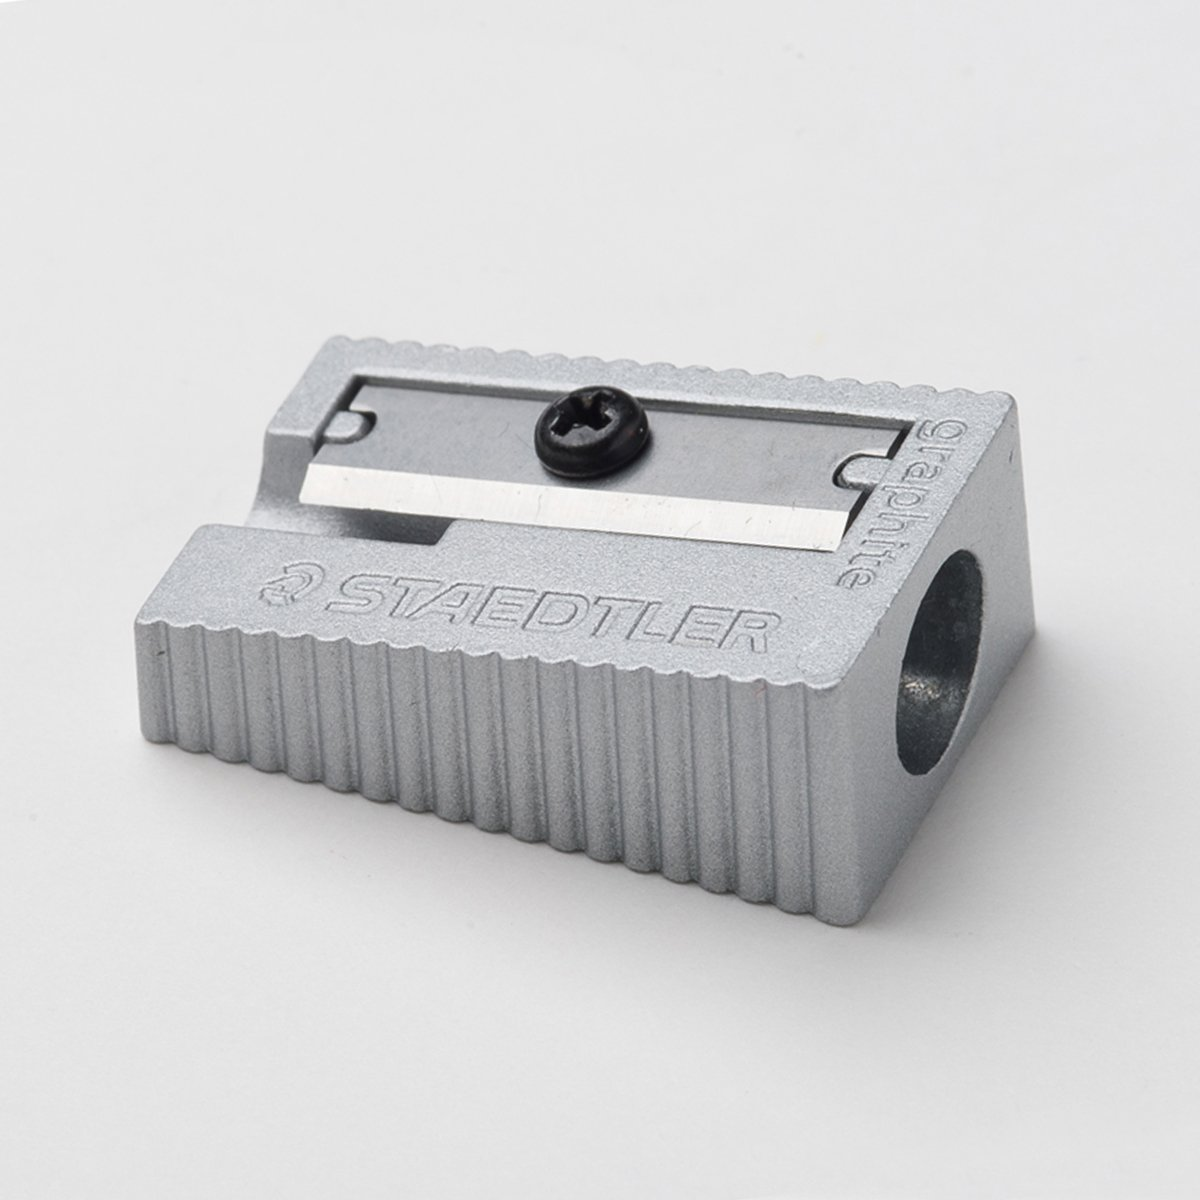 Staedtler Compact Pencil Sharpener 1 Hole